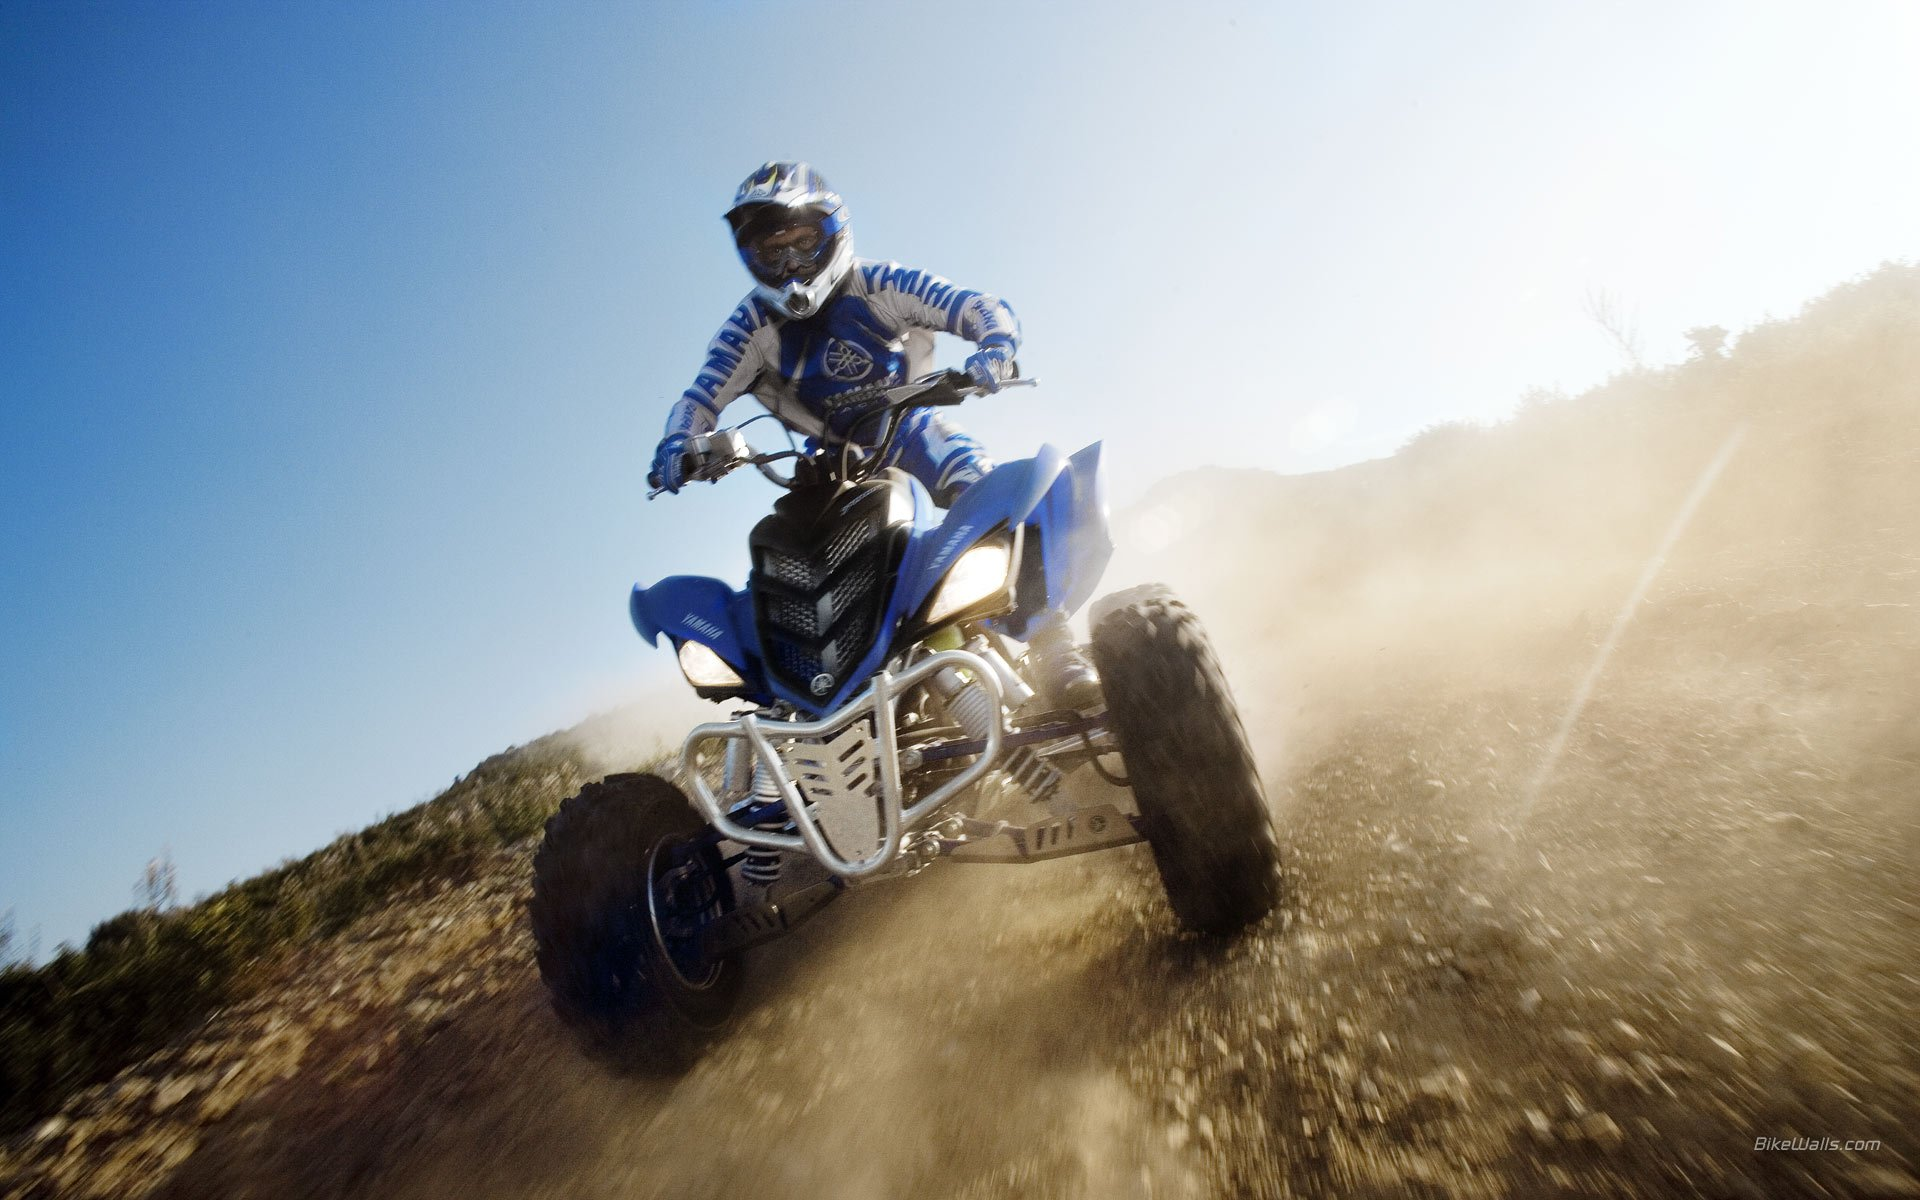 Free download wallpaper yamaha raptor 700r next wallpaper